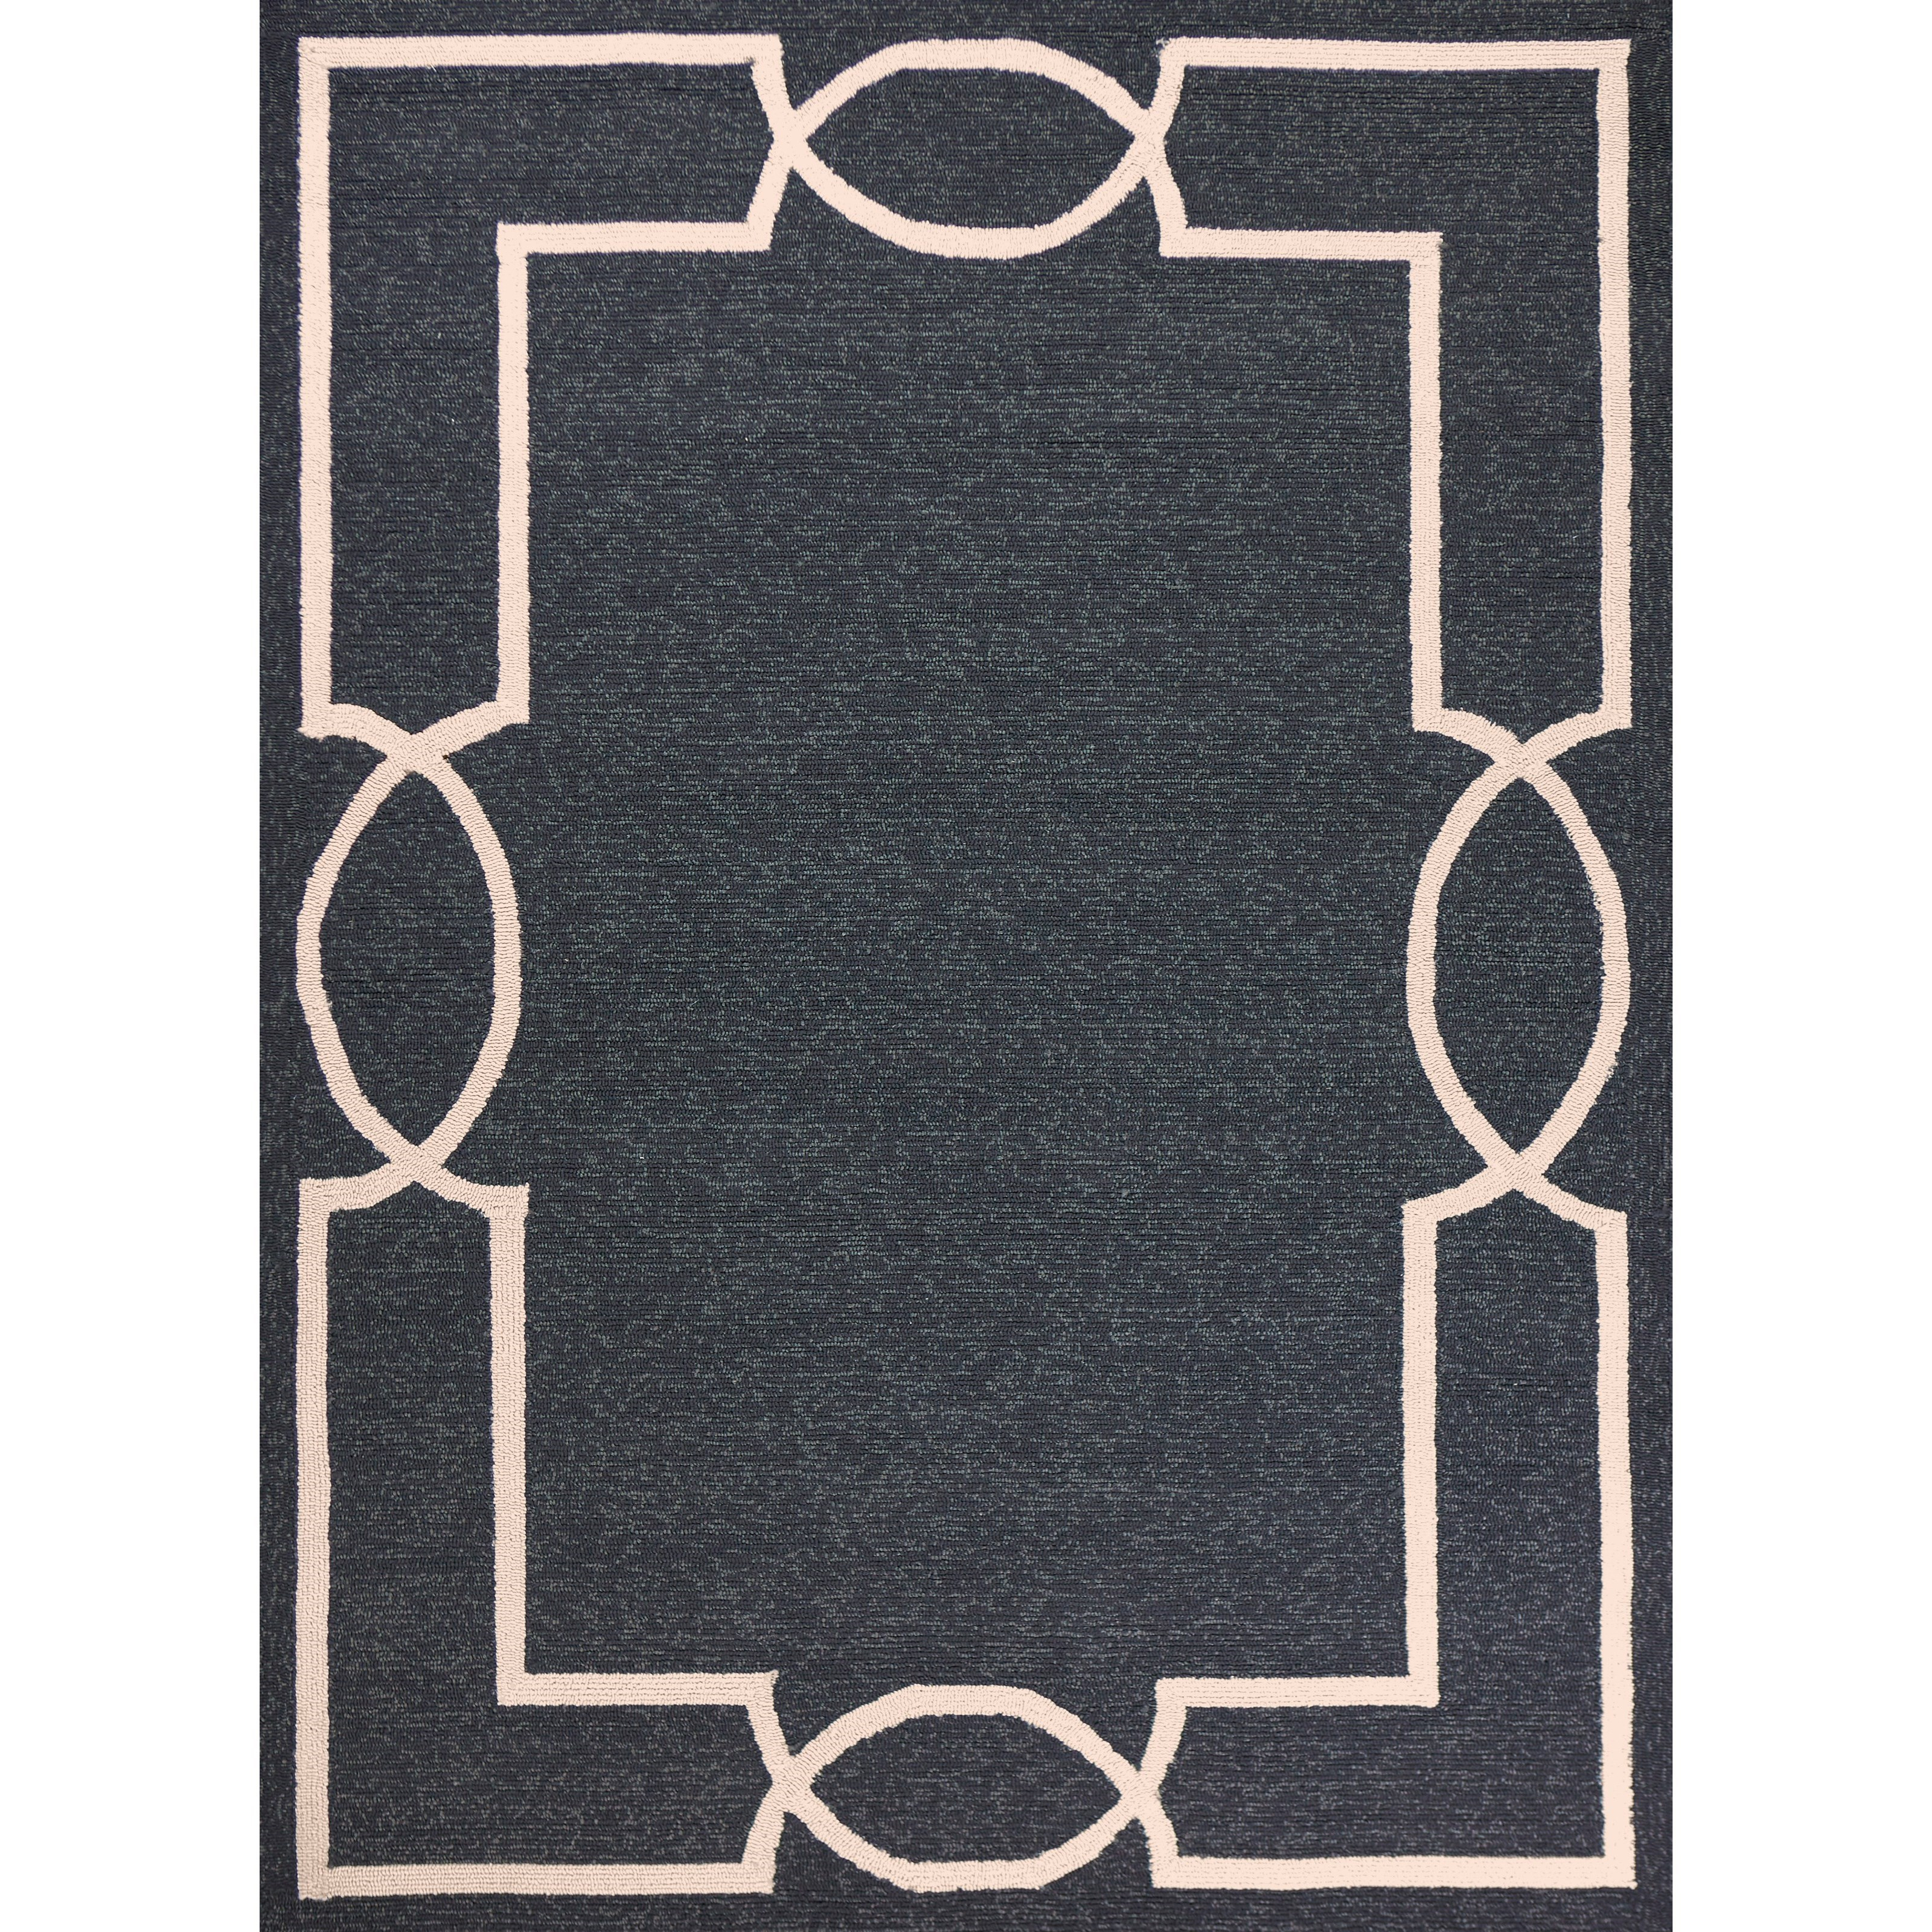 Libby Langdon Hamptons 5' X 3' Area Rug by Kas at Darvin Furniture